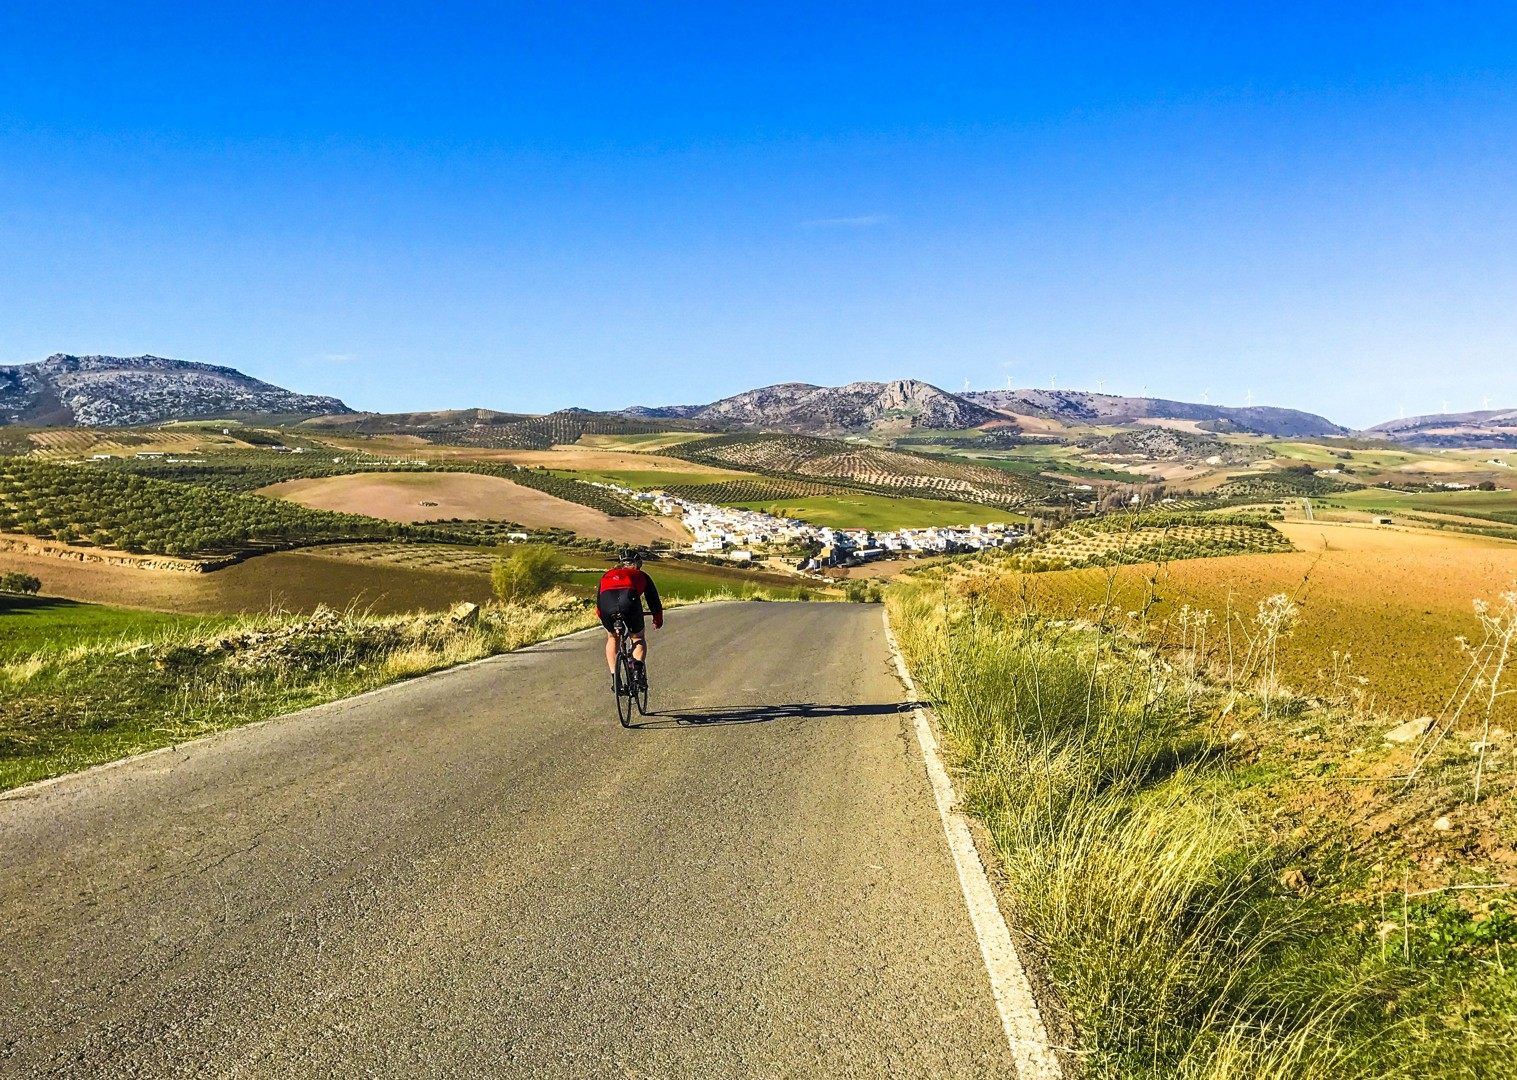 smooth-roads-cycling-vacation-southern-spain.jpg - Southern Spain - Andalucia - Los Pueblos Blancos - Self-Guided Road Cycling Holiday - Road Cycling